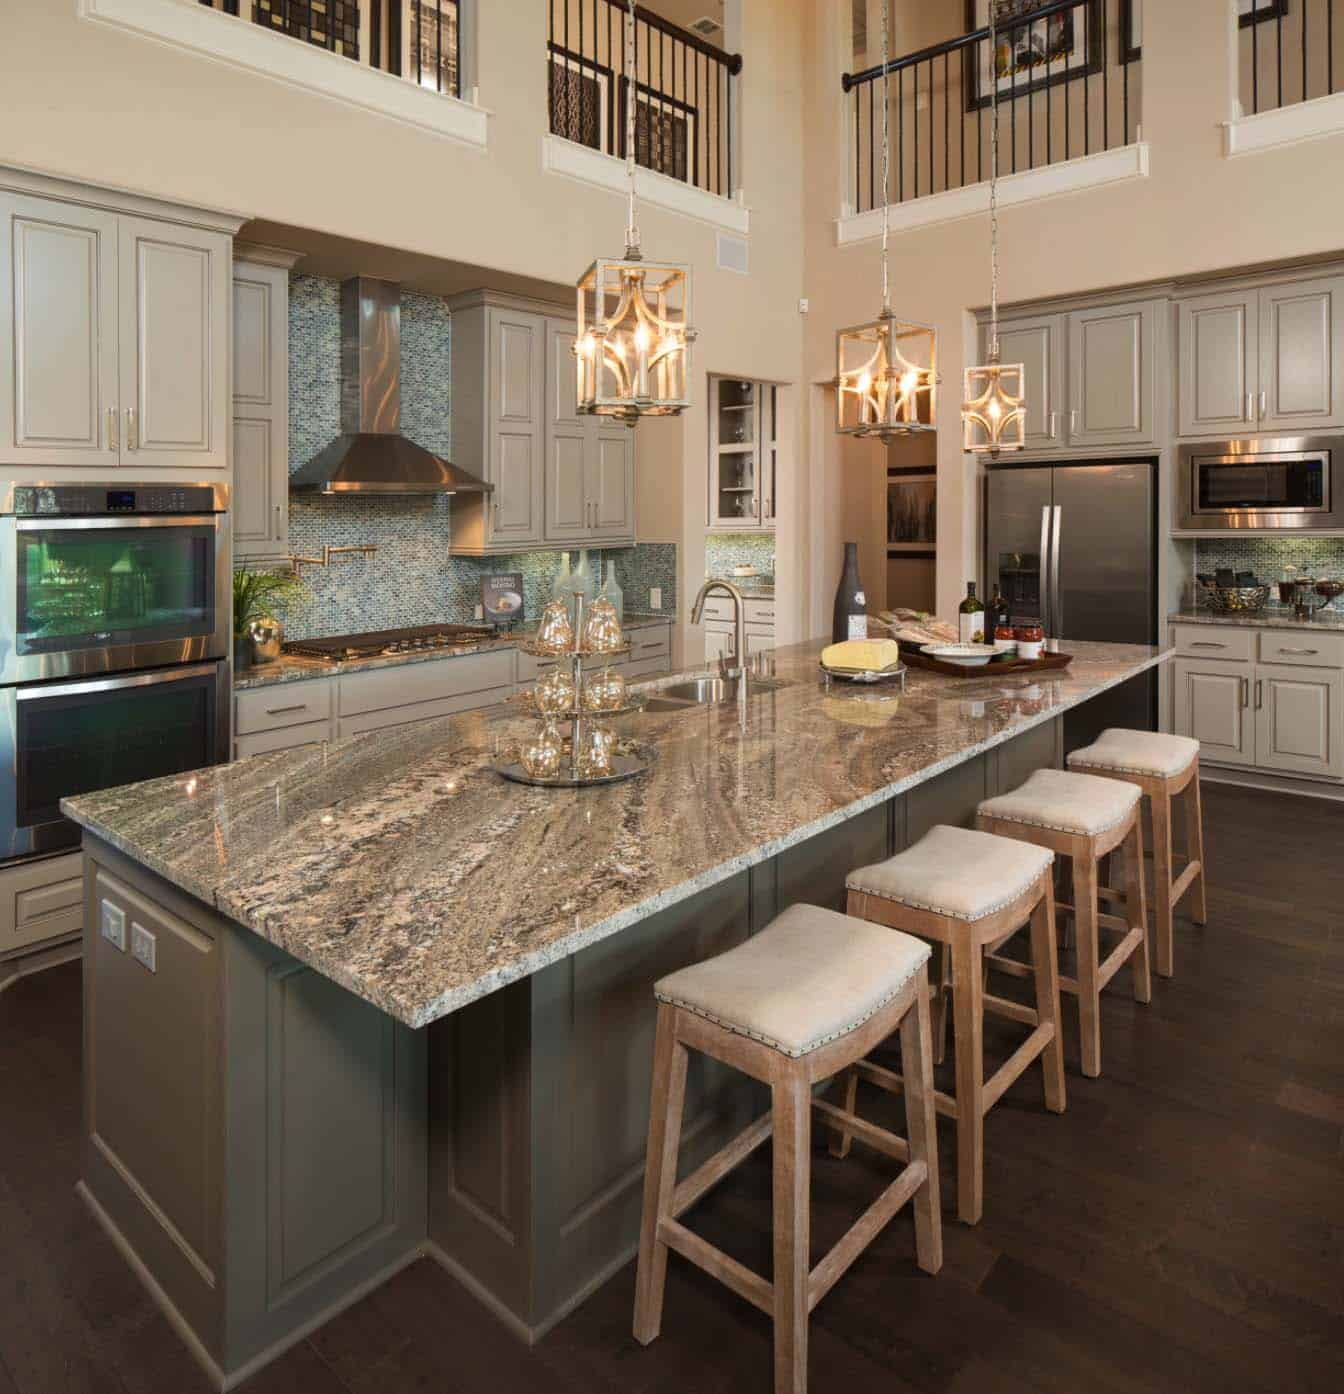 Kitchen Pictures With Islands: 30+ Brilliant Kitchen Island Ideas That Make A Statement